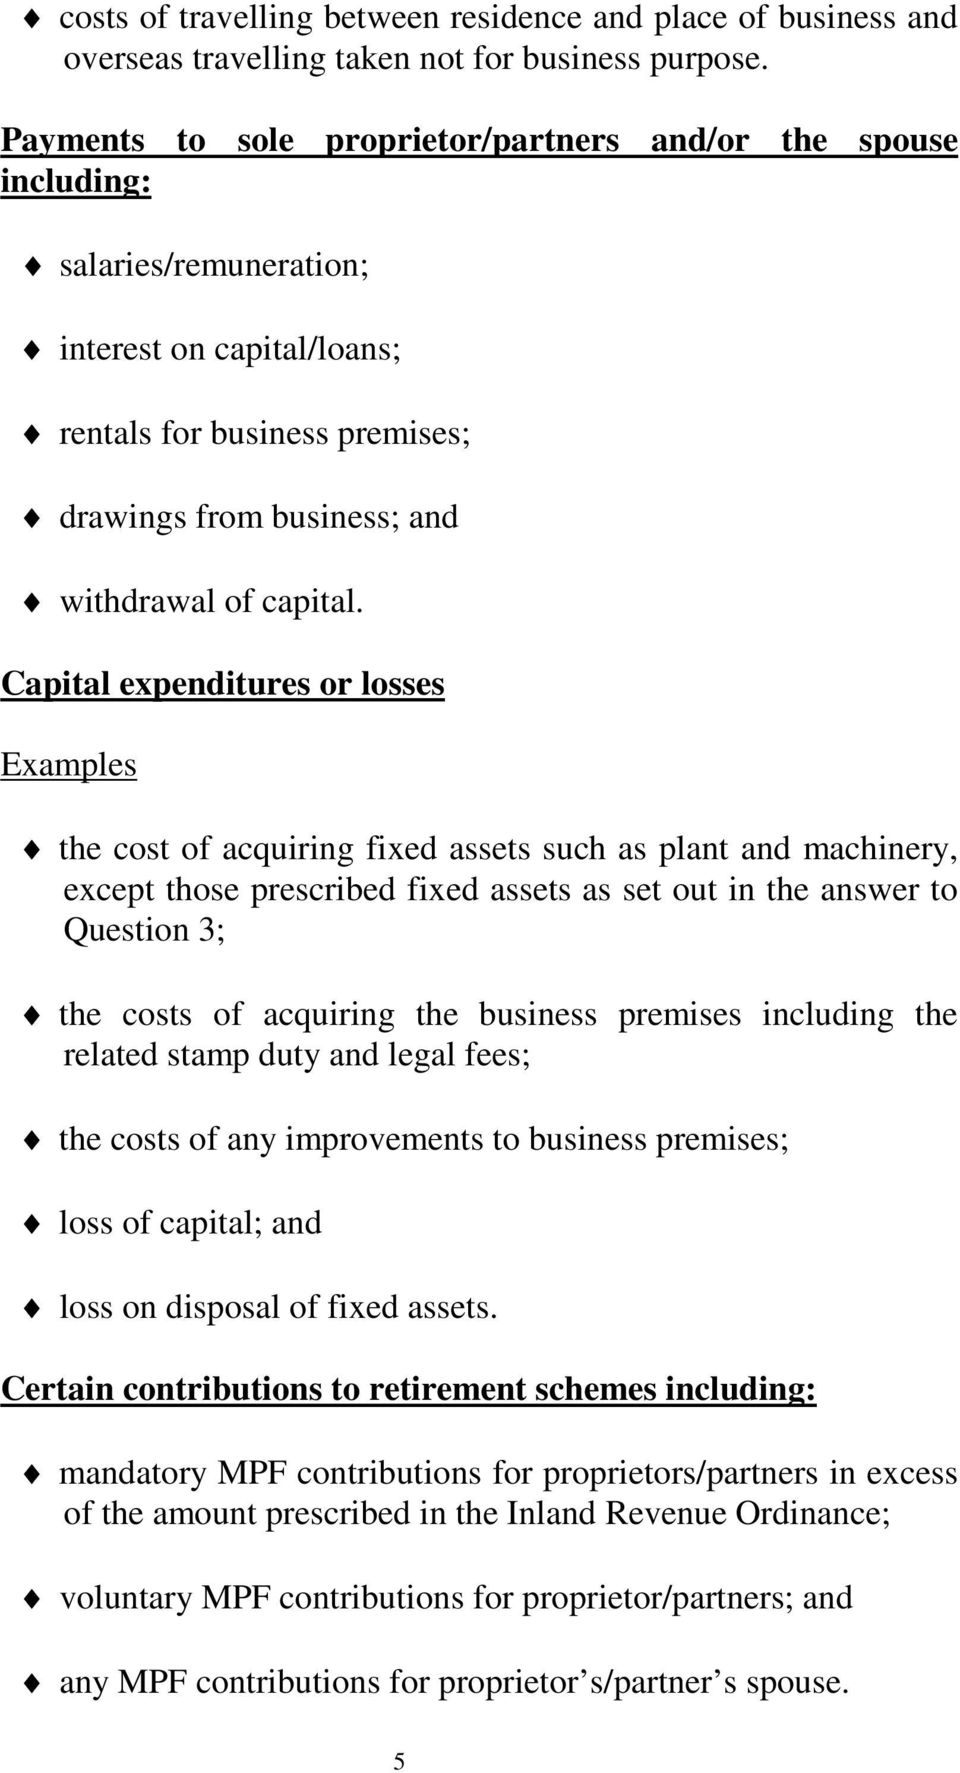 Capital expenditures or losses Examples the cost of acquiring fixed assets such as plant and machinery, except those prescribed fixed assets as set out in the answer to Question 3; the costs of